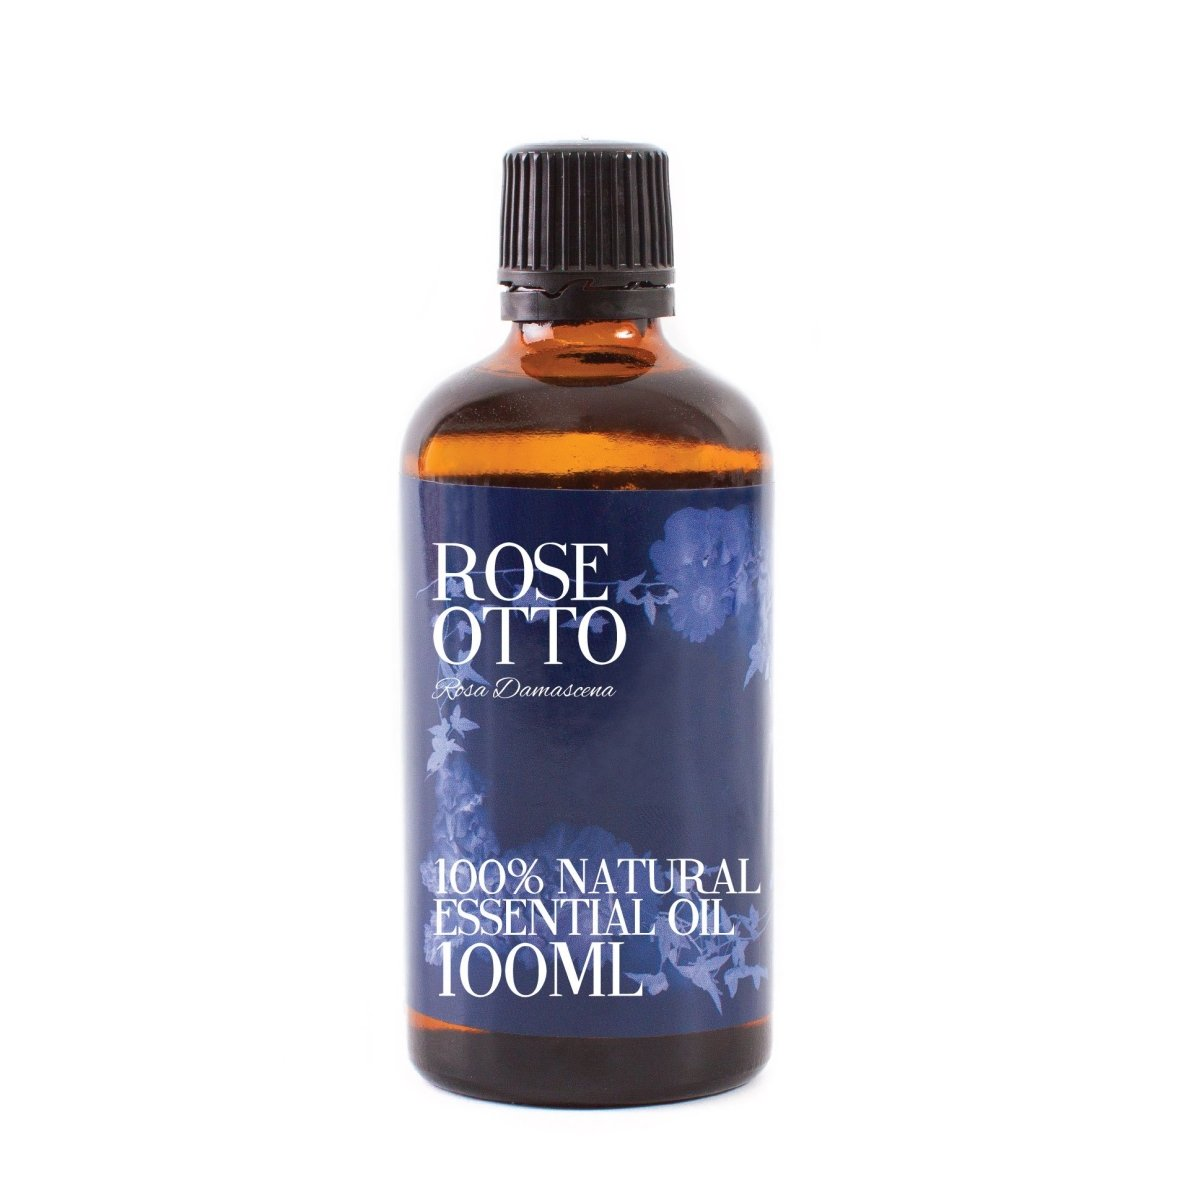 Rose Otto Essential Oil - Mystic Moments UK